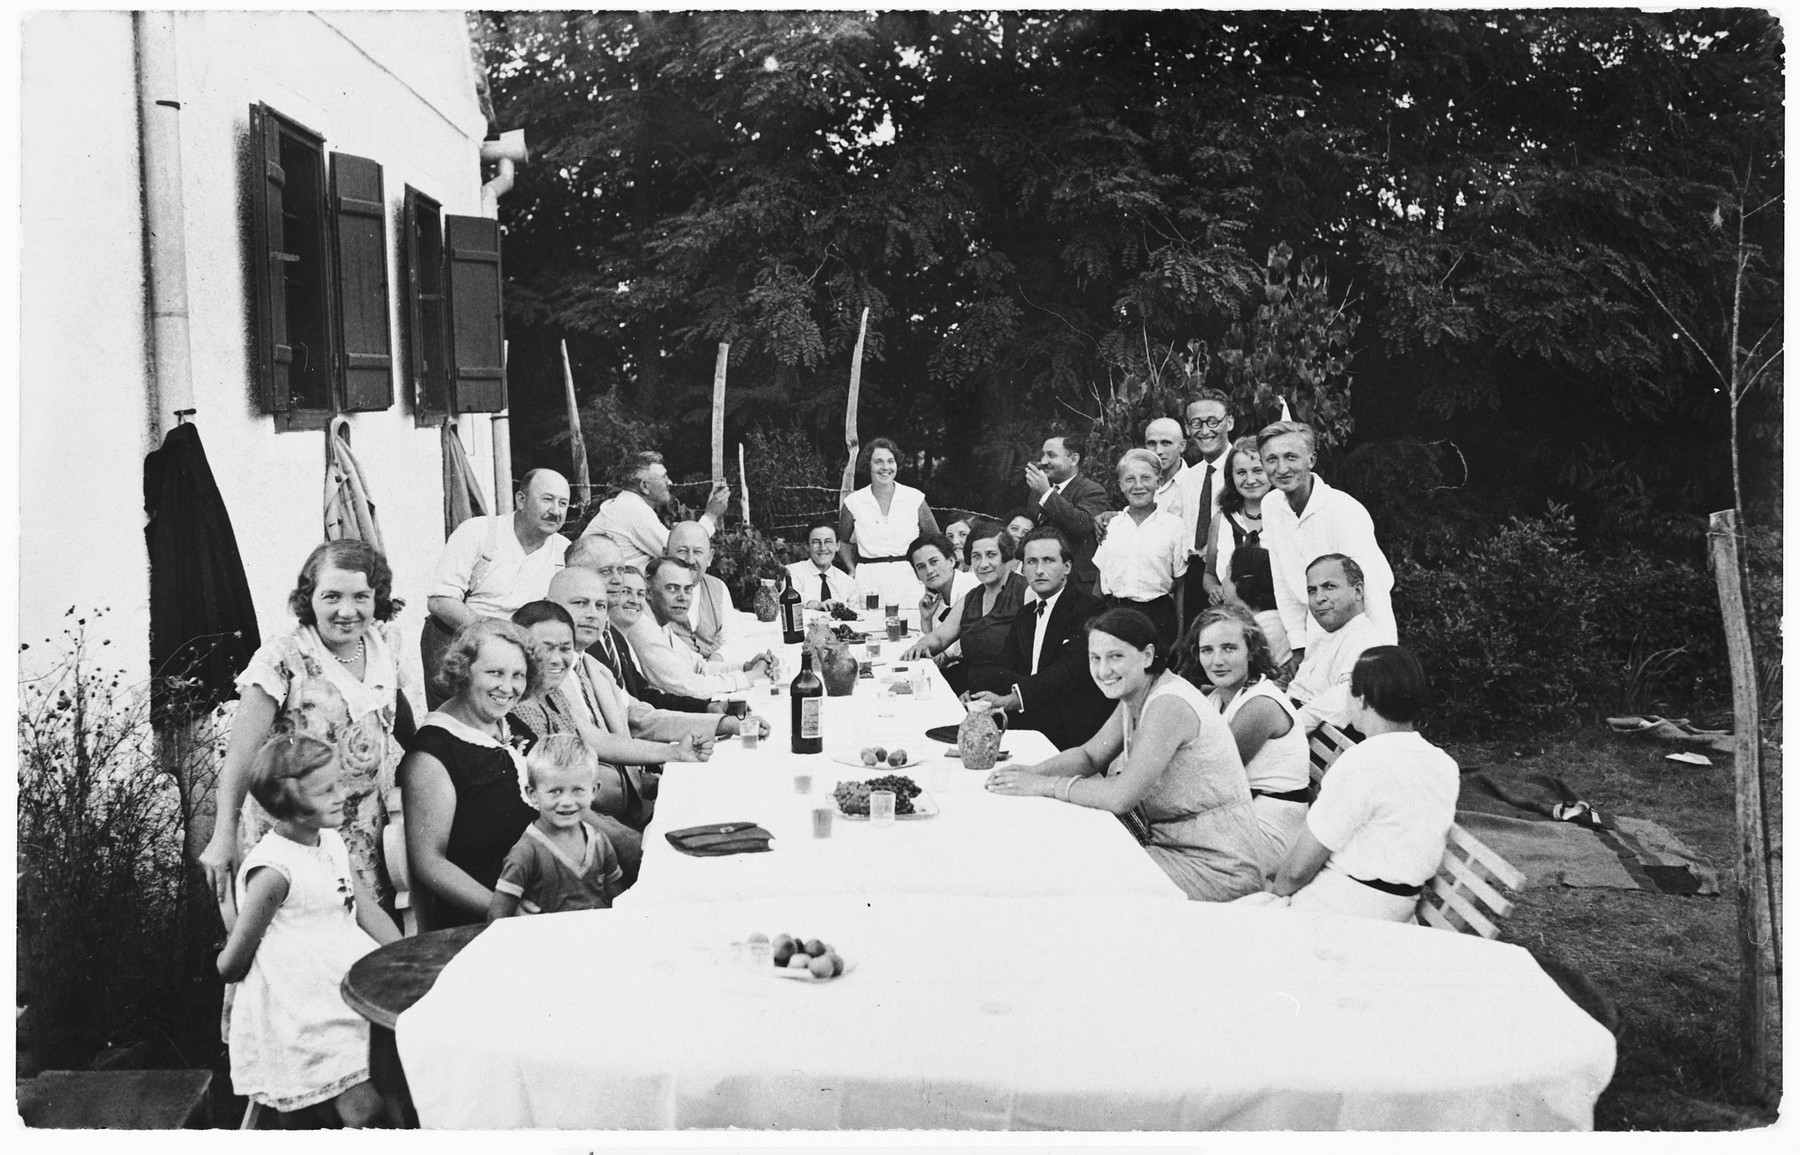 Jews and non-Jews attend a social gathering in the vineyard of Zvonko Kerstner in Ludbreg, Croatia  Among those pictured are Zvonko and Ivo Kerstner, Giza Deutsch and Ljudevit Vrancic.  The Kerstners owned a brick factory and helped protect Teodora Basch during the war.